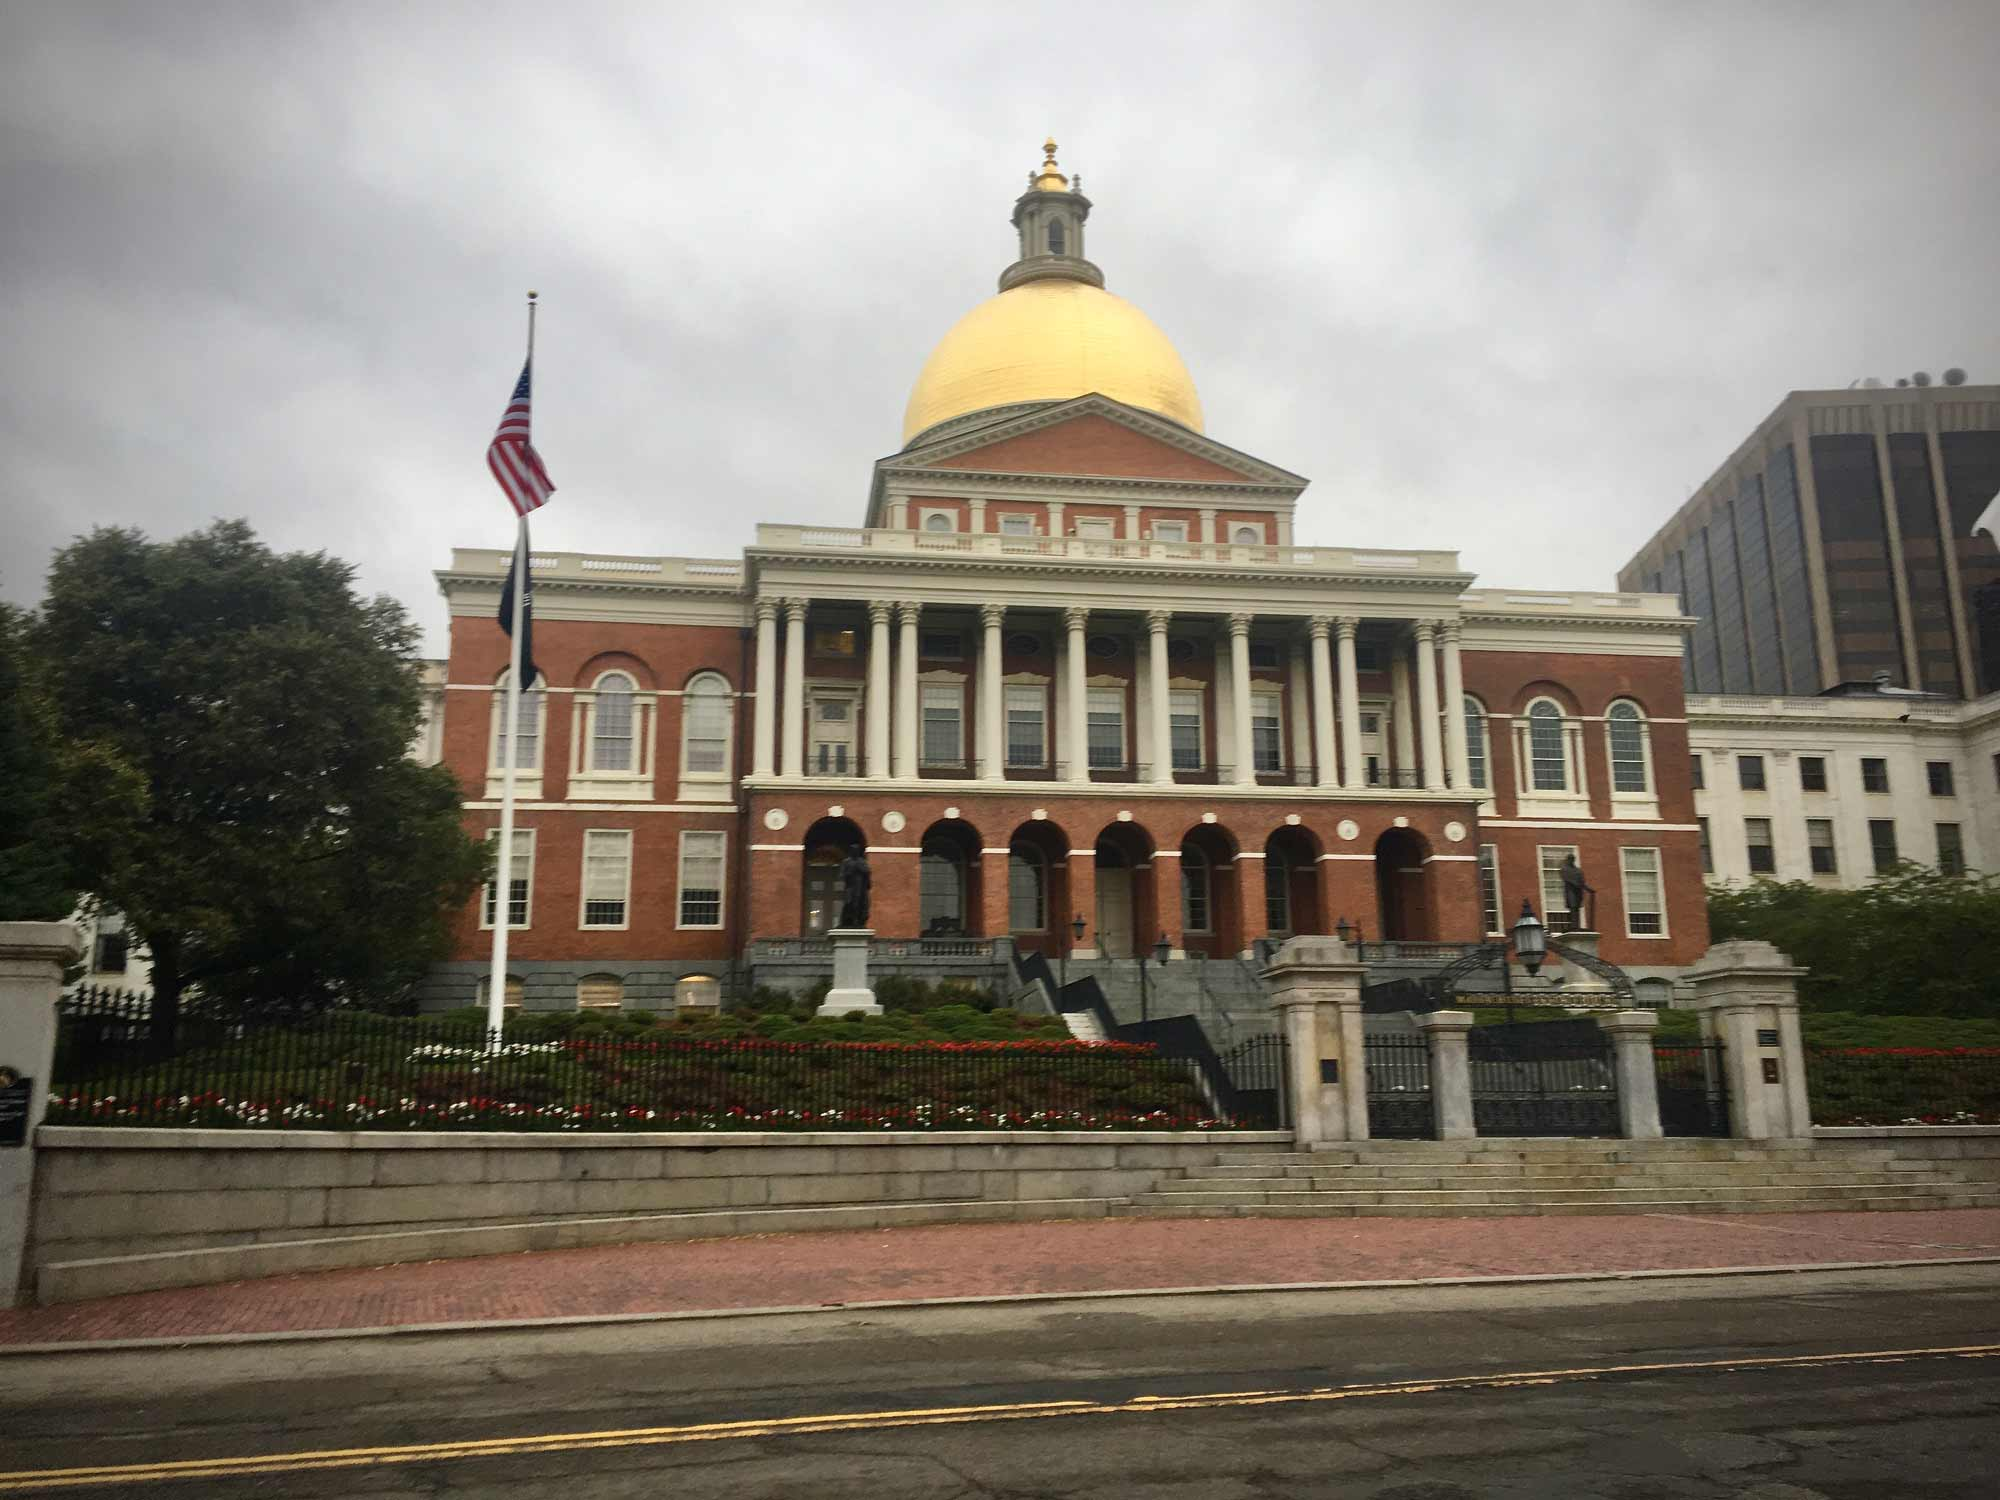 Gold done on the Massachusetts State House in Boston, Massachusetts on the Freedom Trail